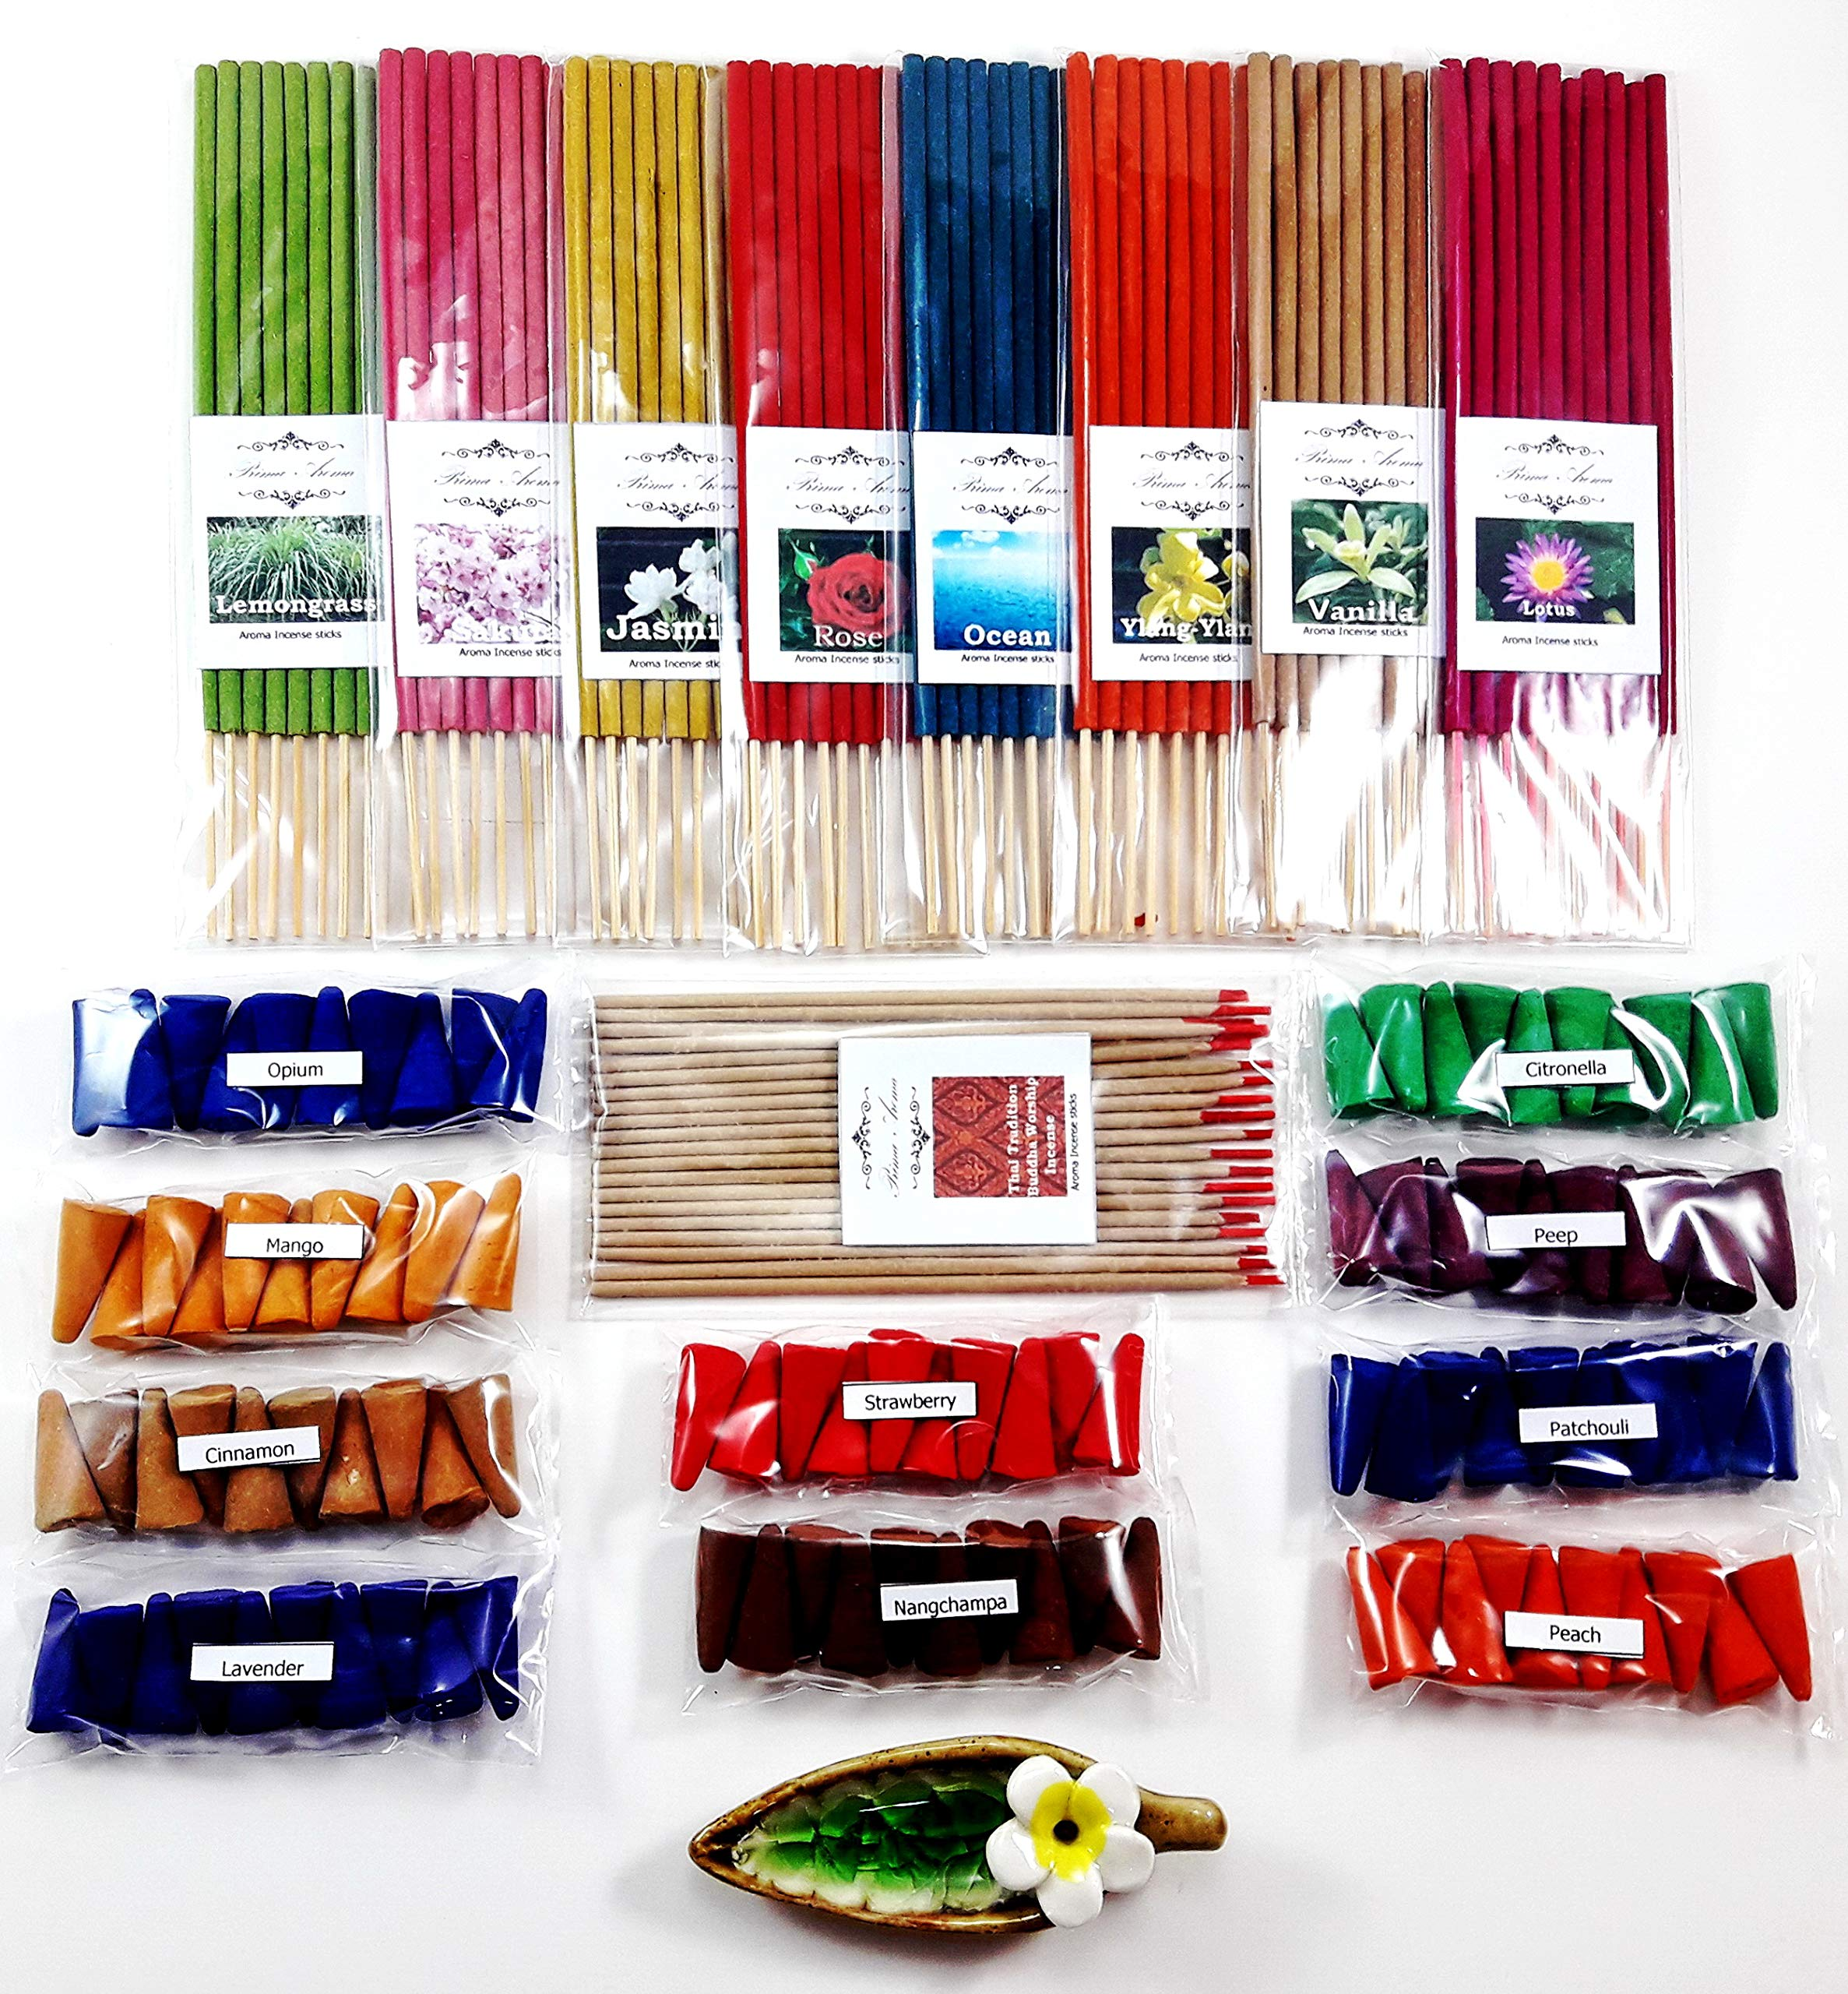 Relaxation with 19 scented, Thai tradition temple incense 20 sticks, 8 packs of 10 smokeless fragrance incense tube, 10 packs of 10 aroma fragrance Incense cones & handmade ceramic Incense burner (P4) by Prima Place